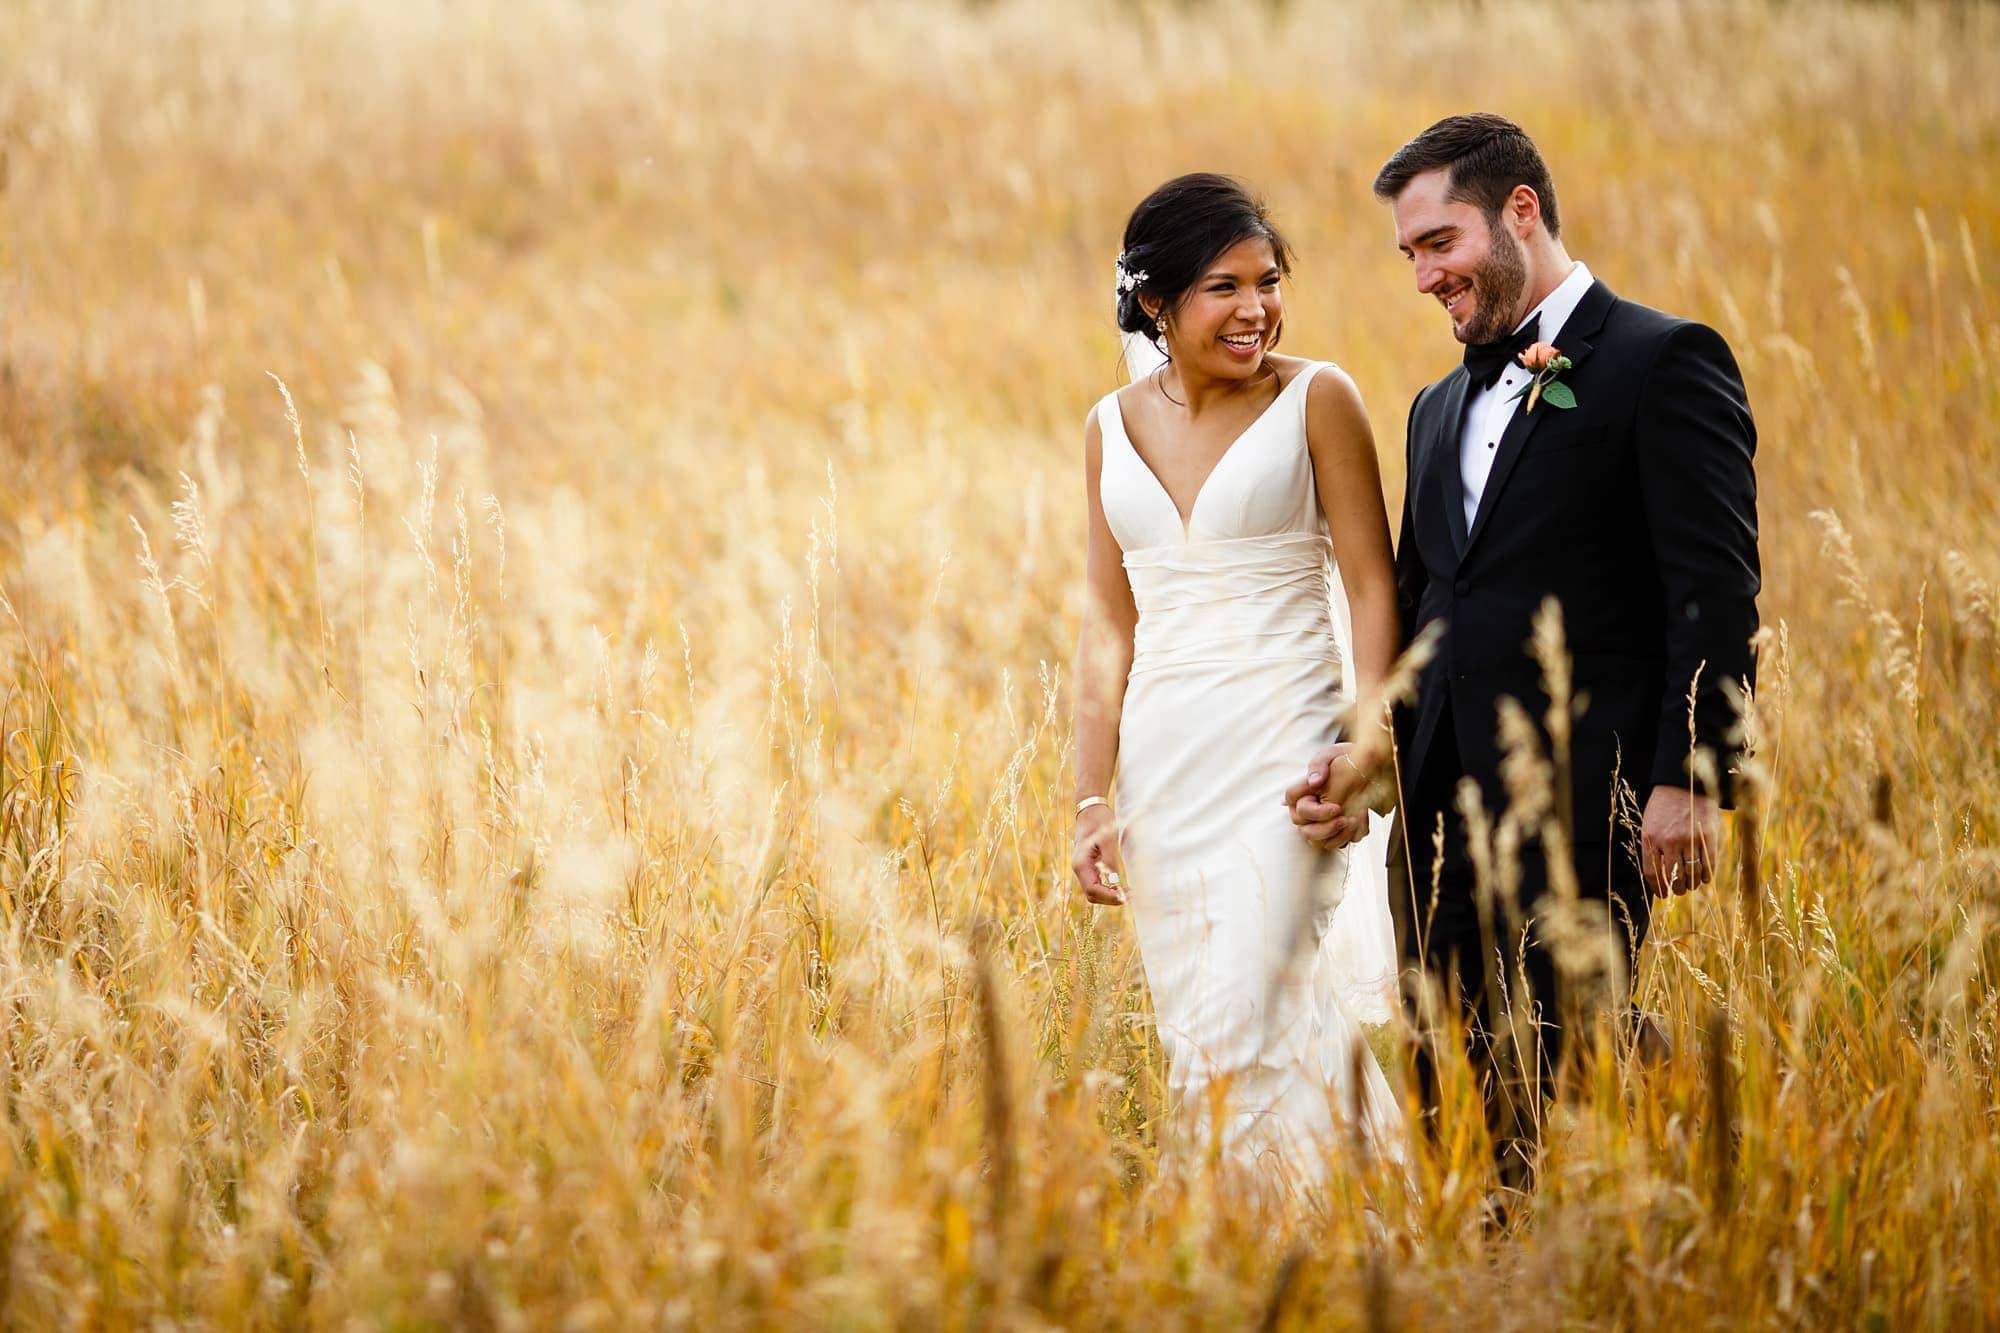 Megan walks with Bryan in the long grass at Centennial Park Trailhead in Boulder following their fall wedding